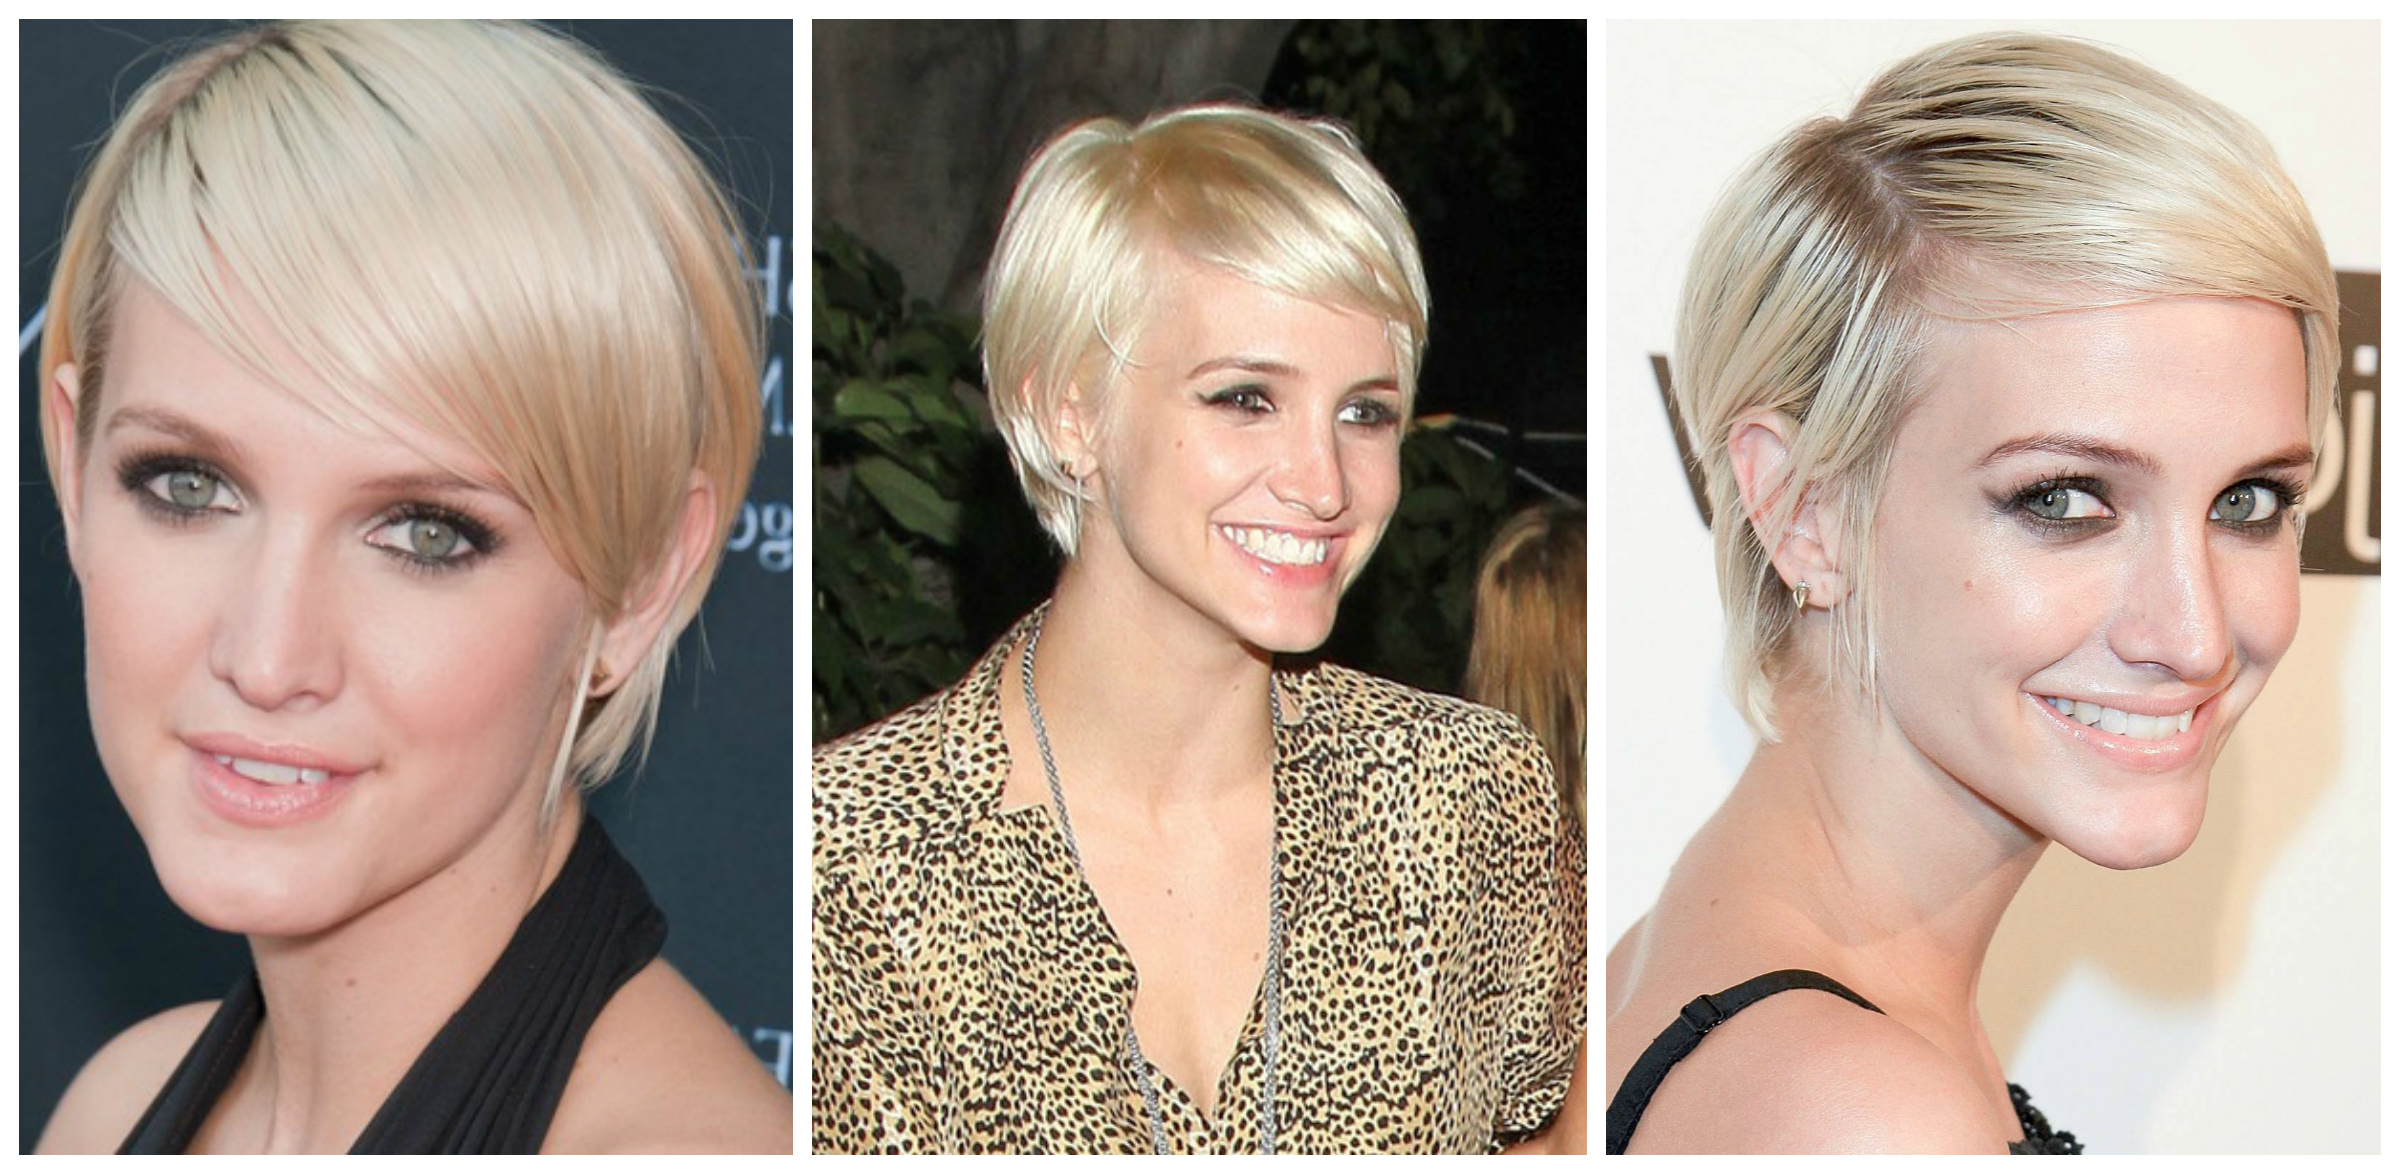 Short Haircuts And Short Hairstyle Ideas For Spring/summer 2013 Inside Short Hairstyles Cut Around The Ears (View 5 of 25)